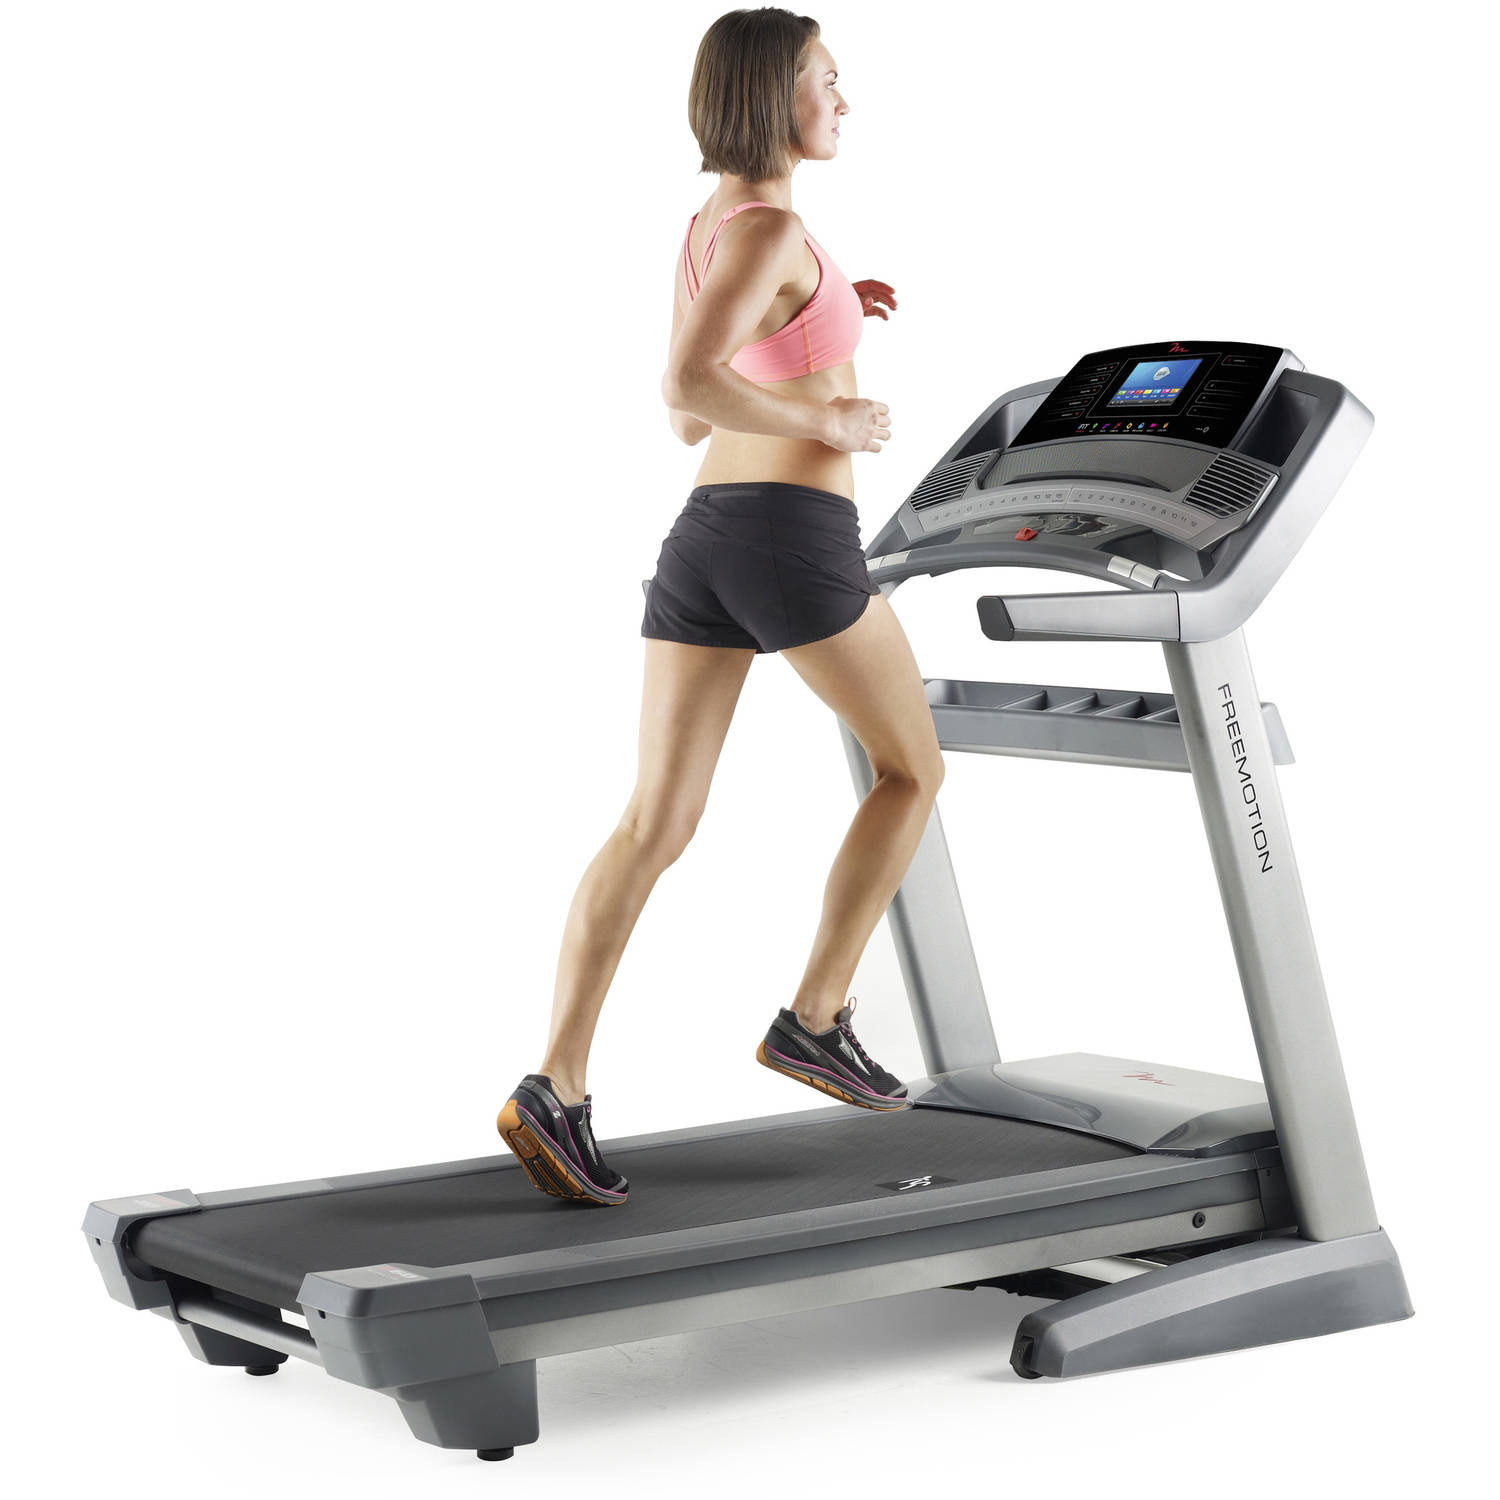 Freemotion 860 Treadmill, Powered by iFit